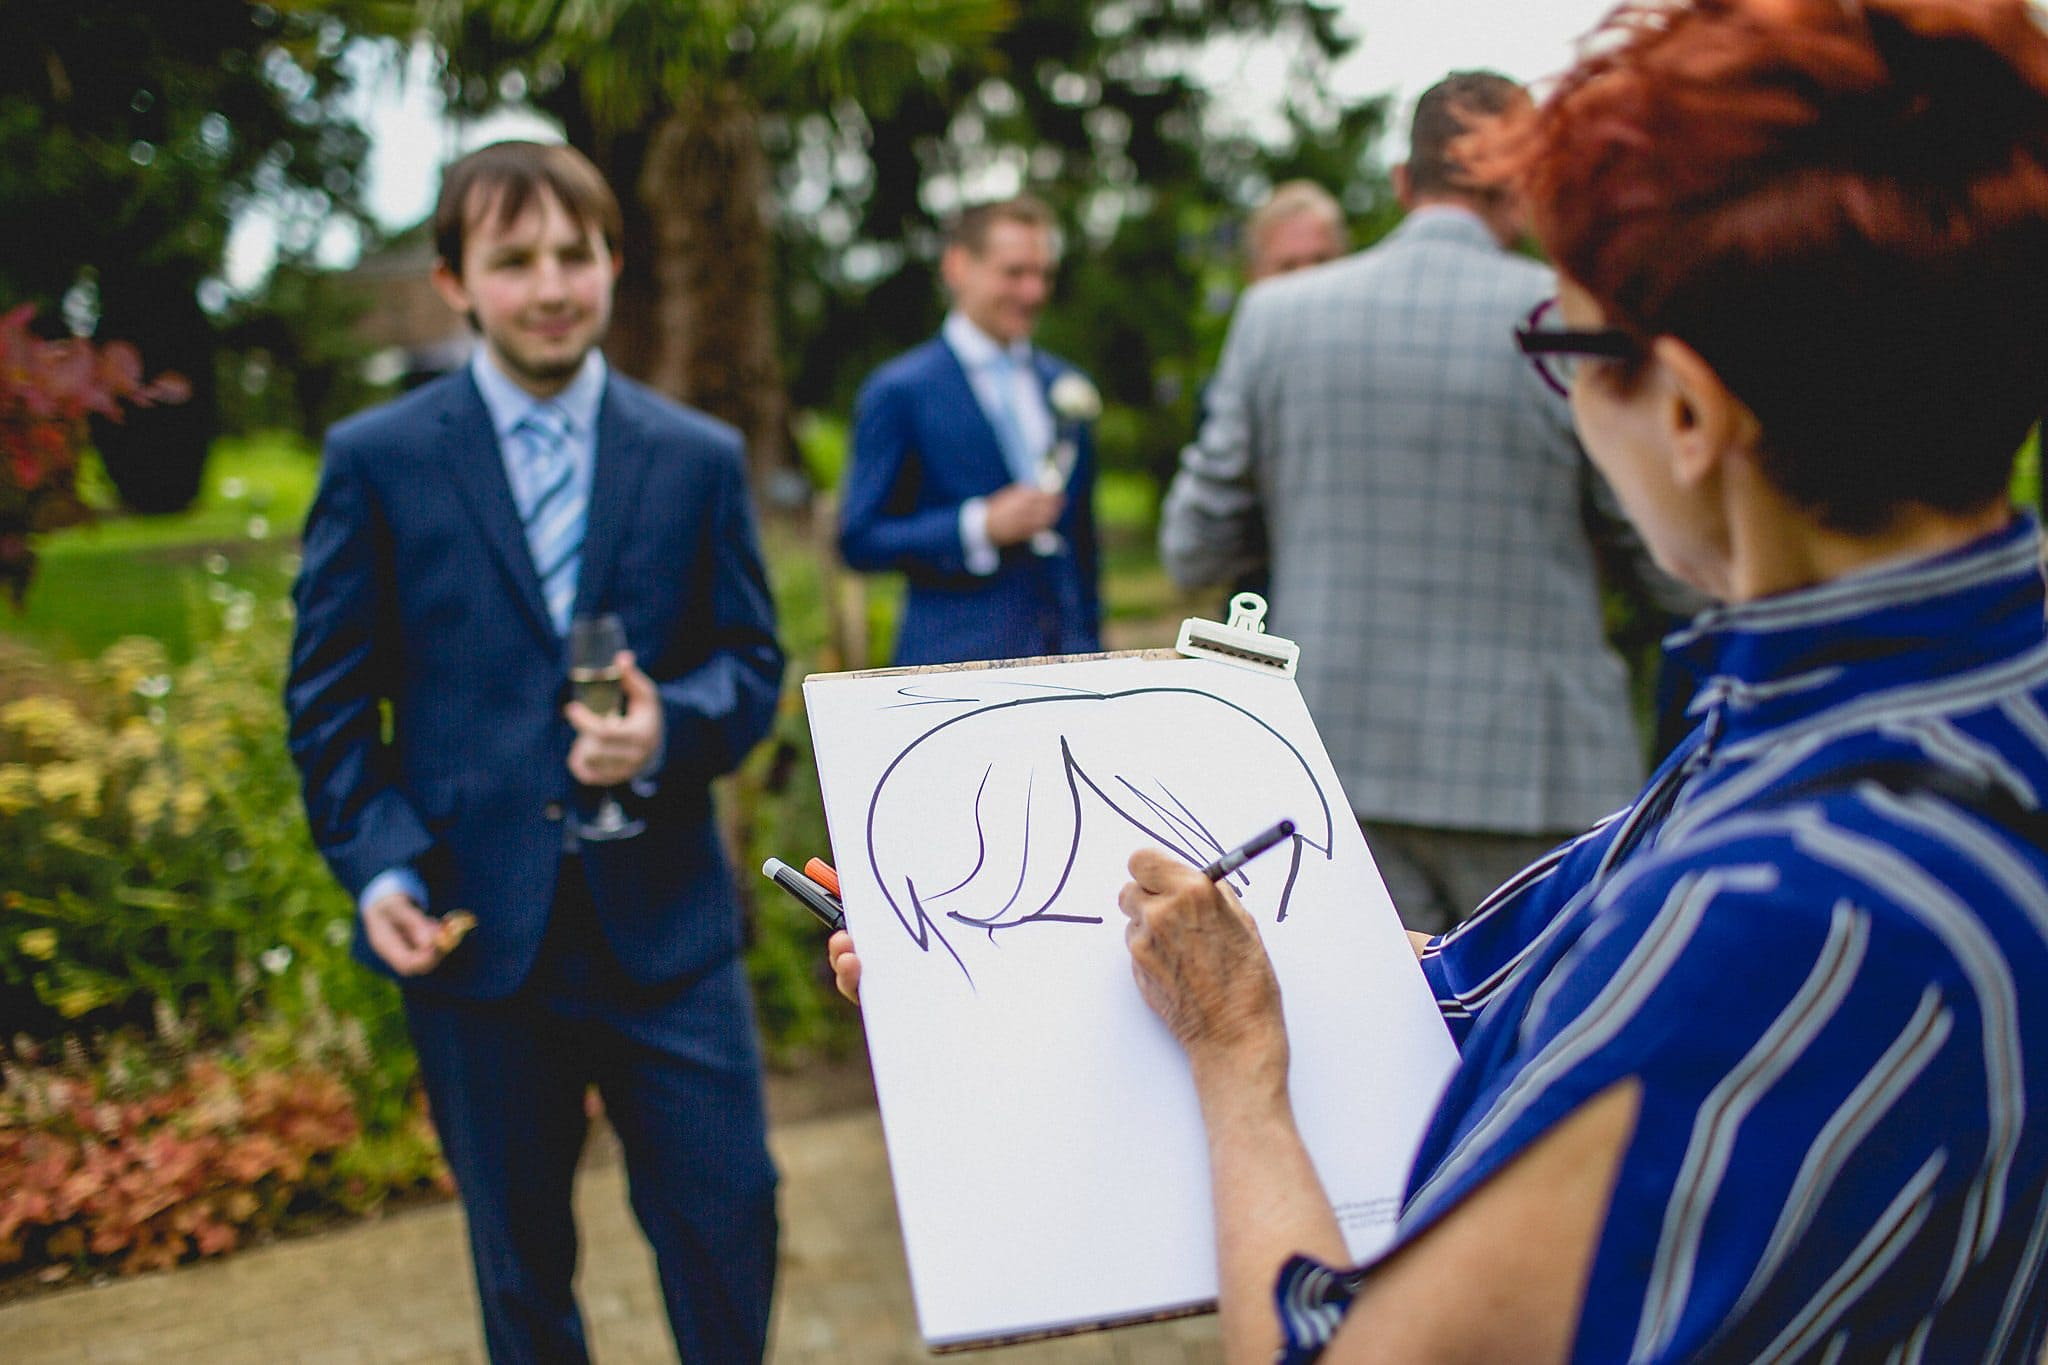 The caricaturist in action